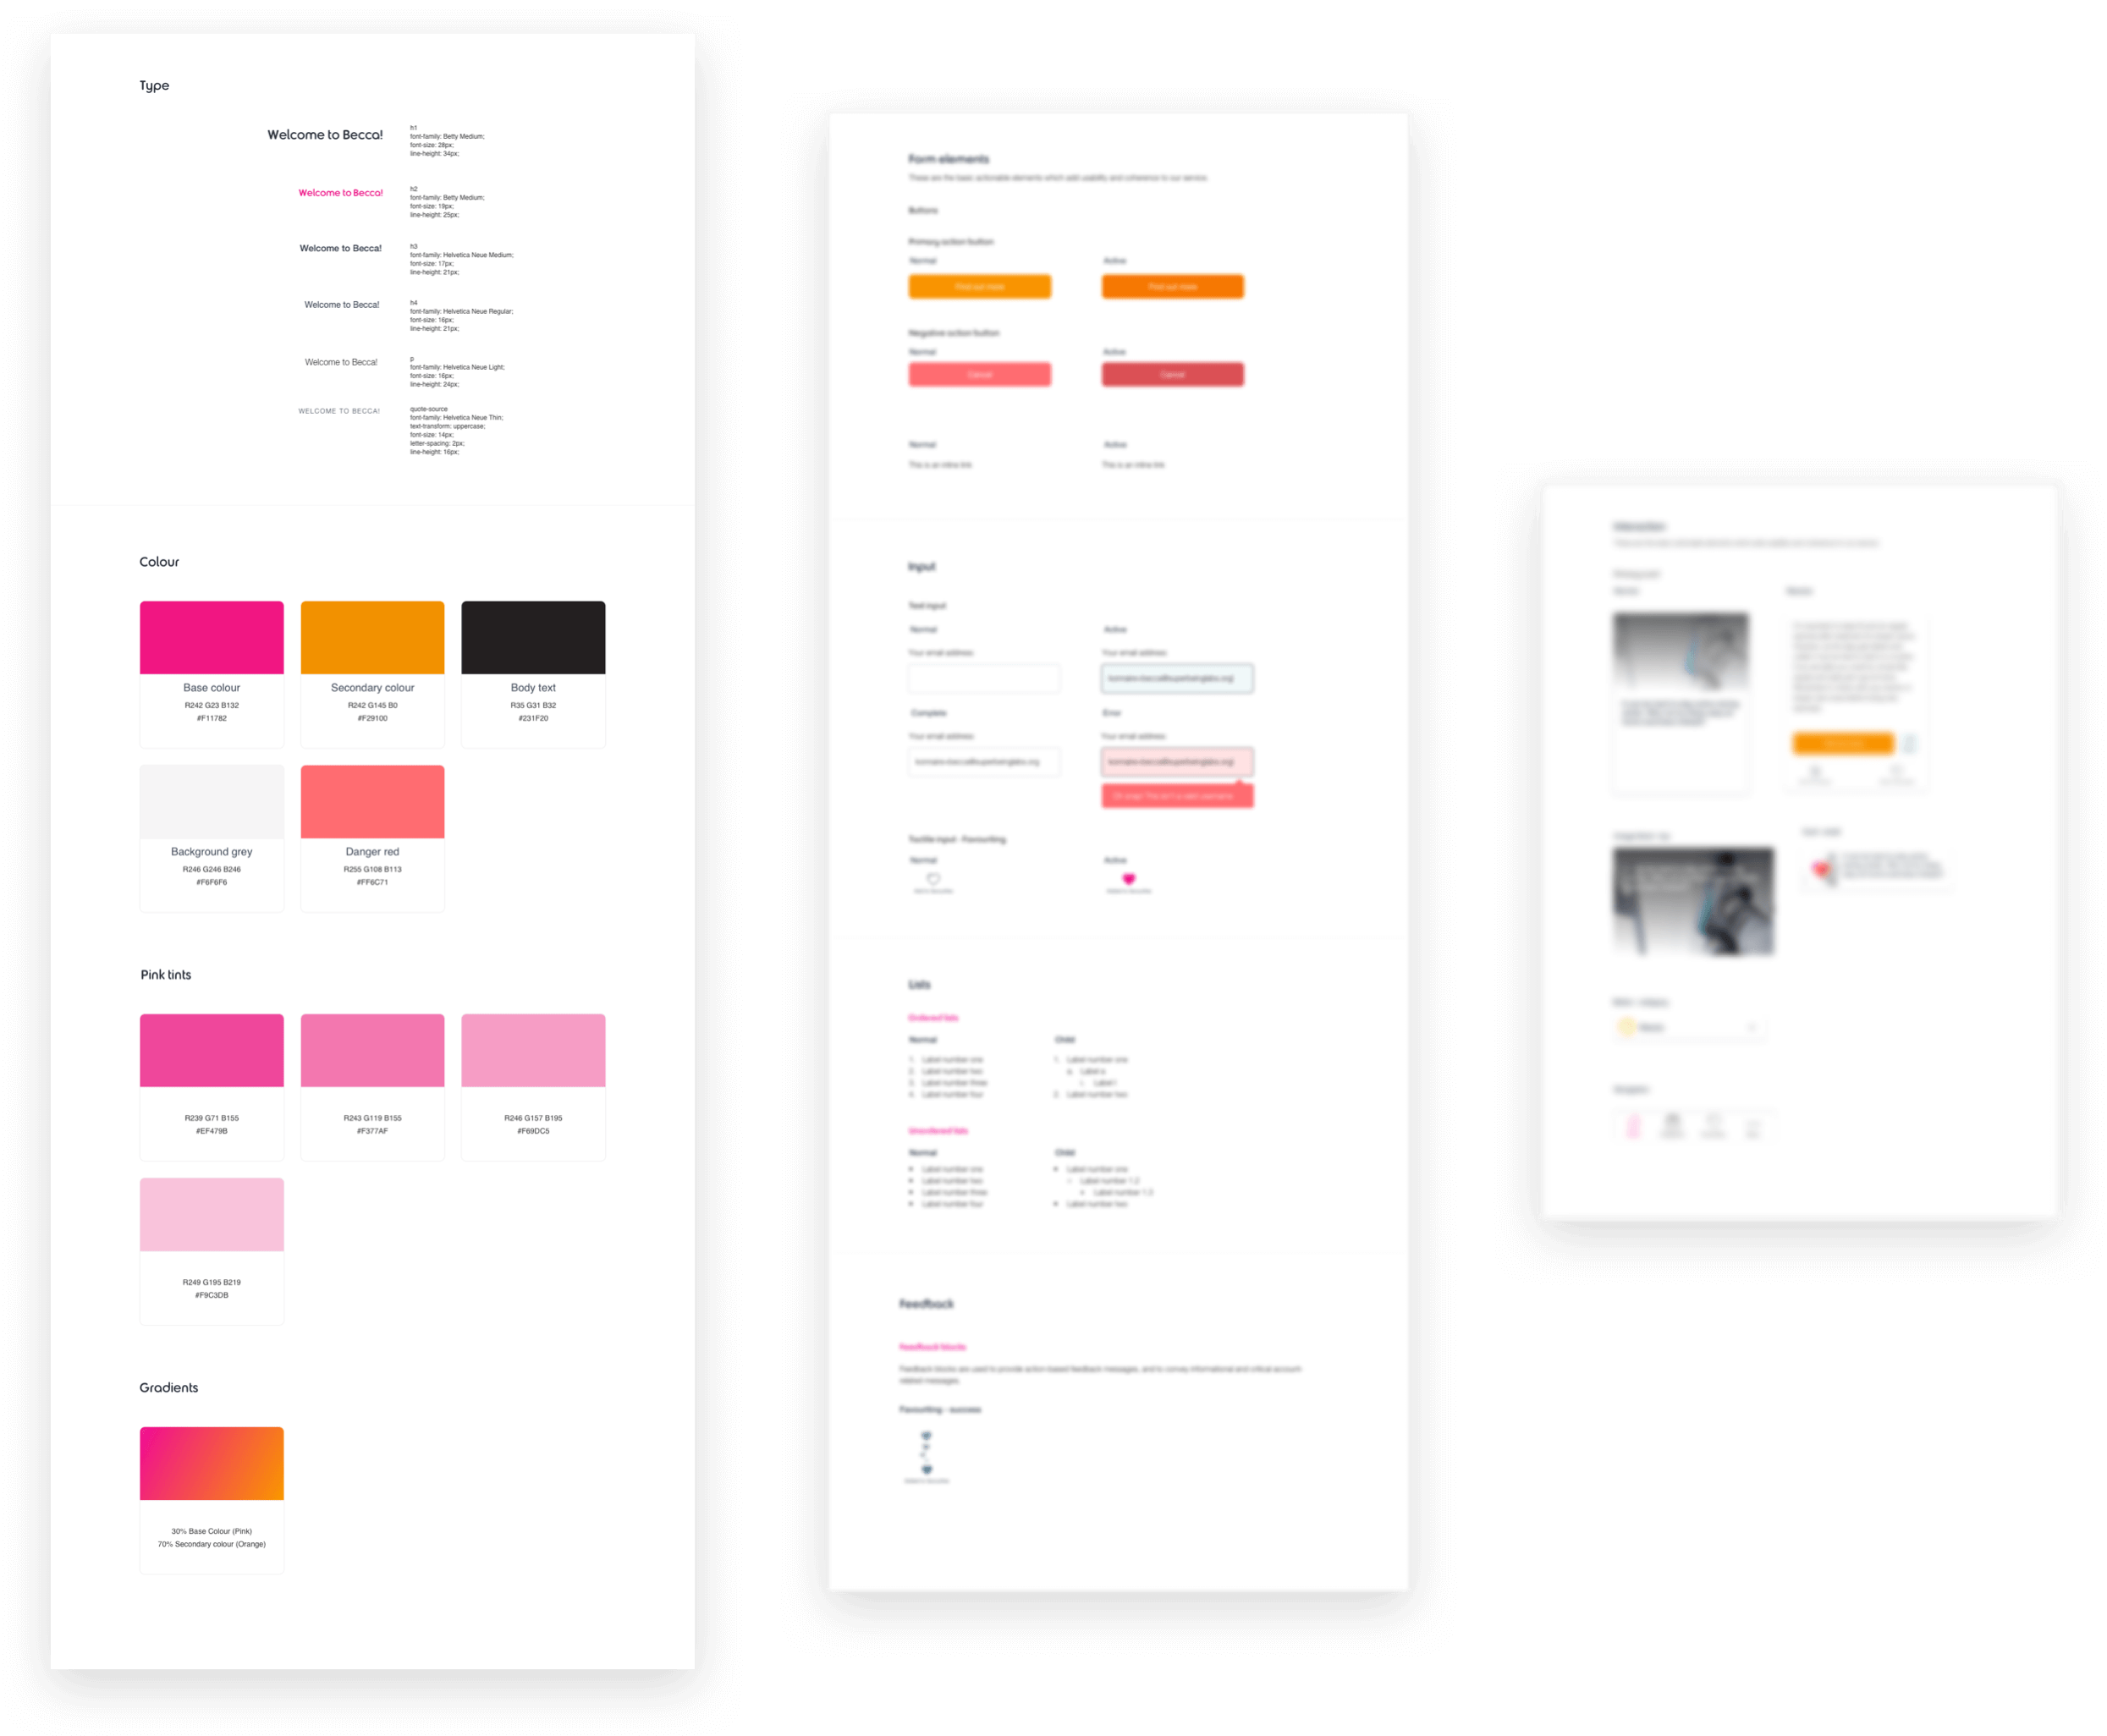 Image showing some of the Atomic Design system we created